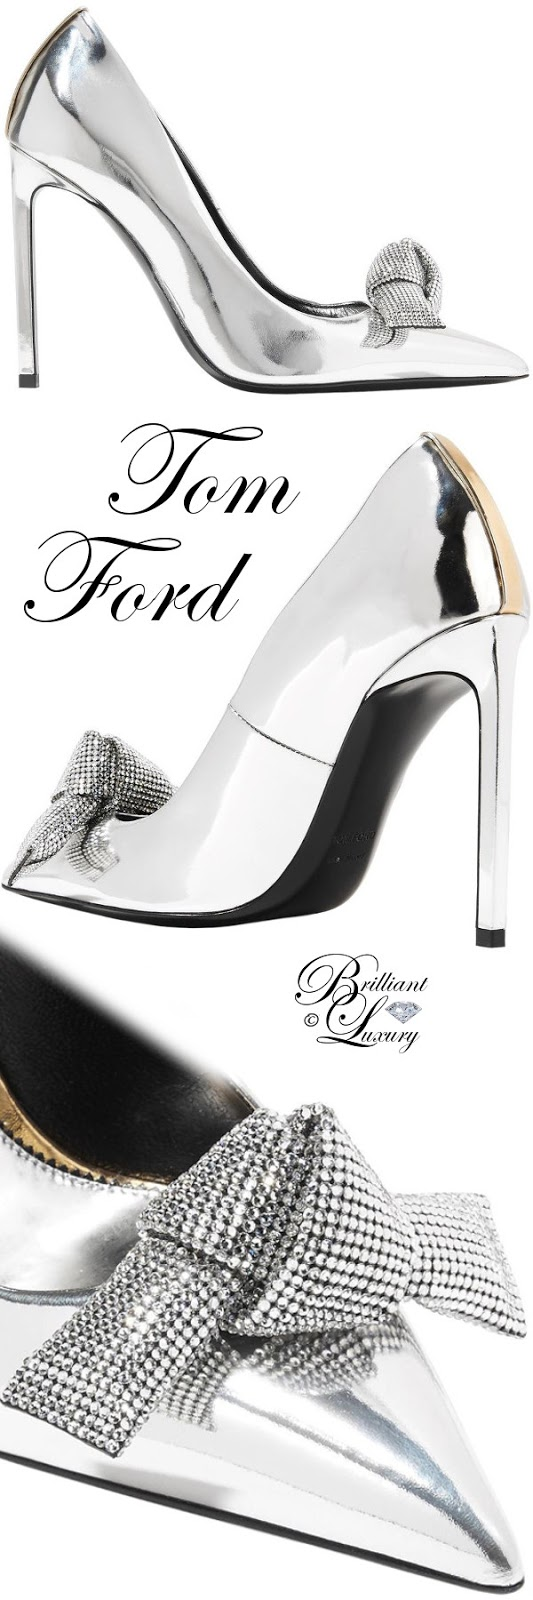 Brilliant Luxury ♦ Tom Ford metallic Swarovski crystal embellished mirrored leather court pumps #silver